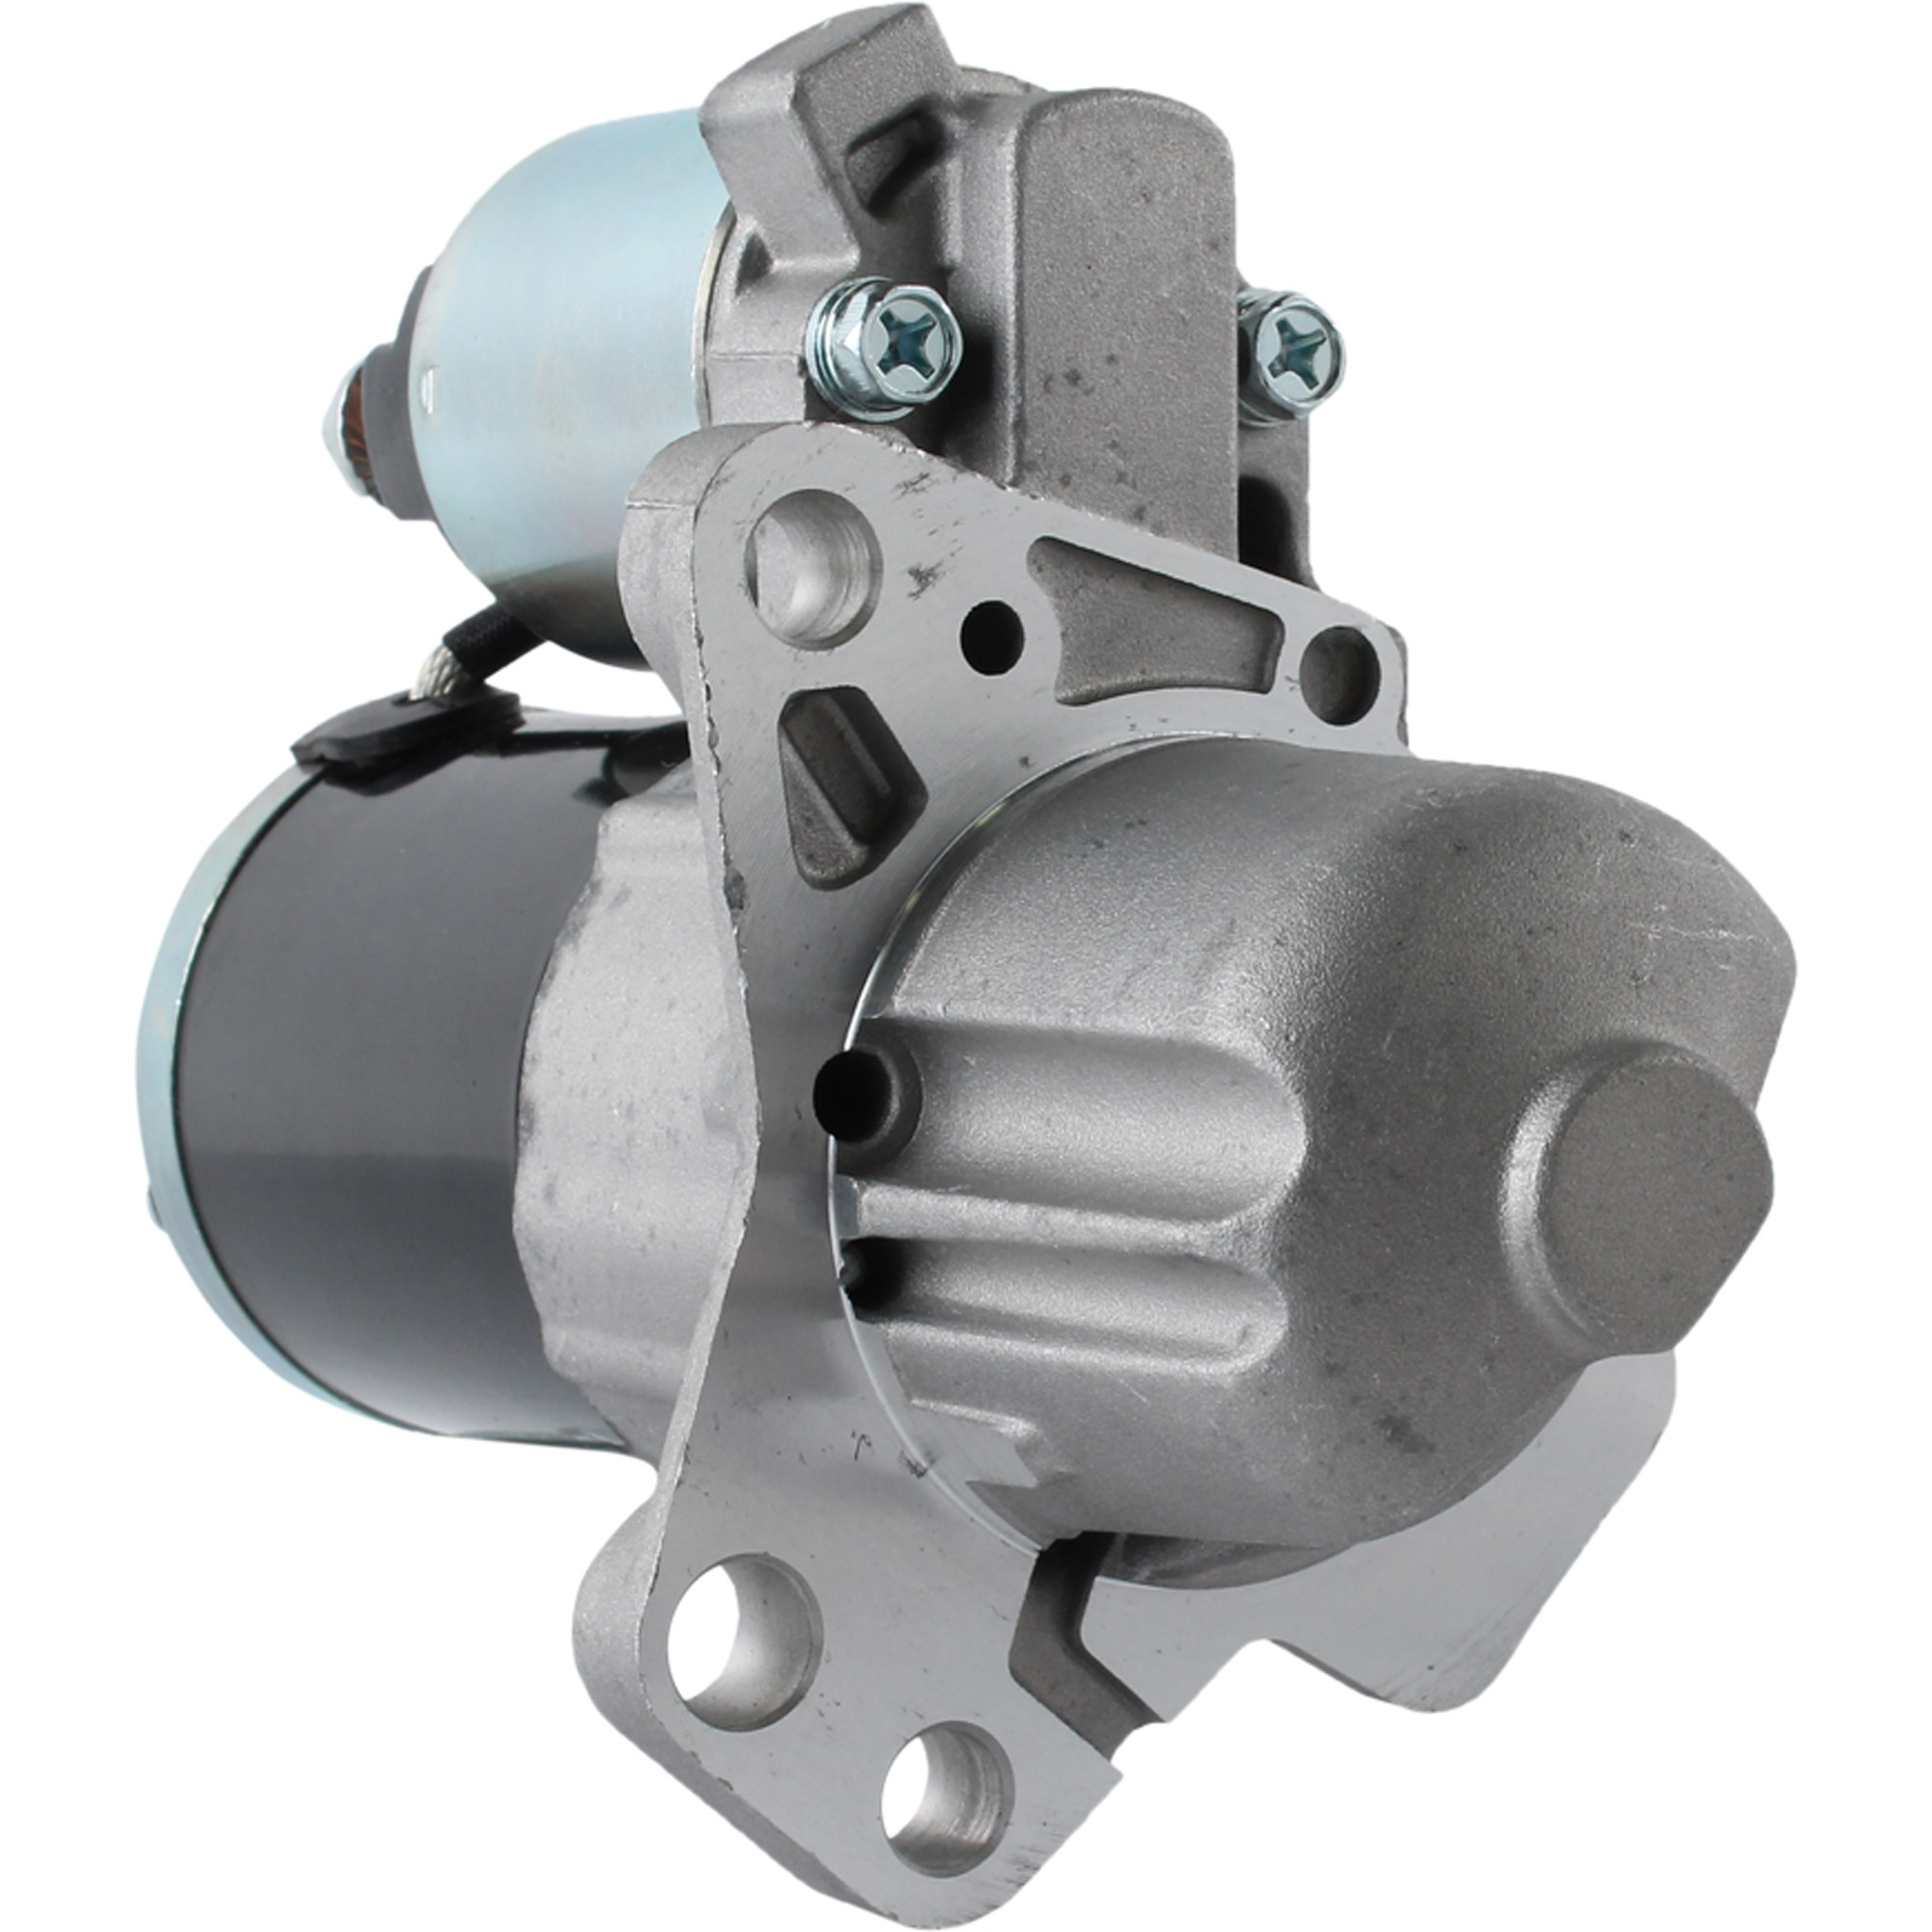 NEW STARTER For 2.8 2.8L CADILLAC SRX 10 11, 9-3 9-4 9-5